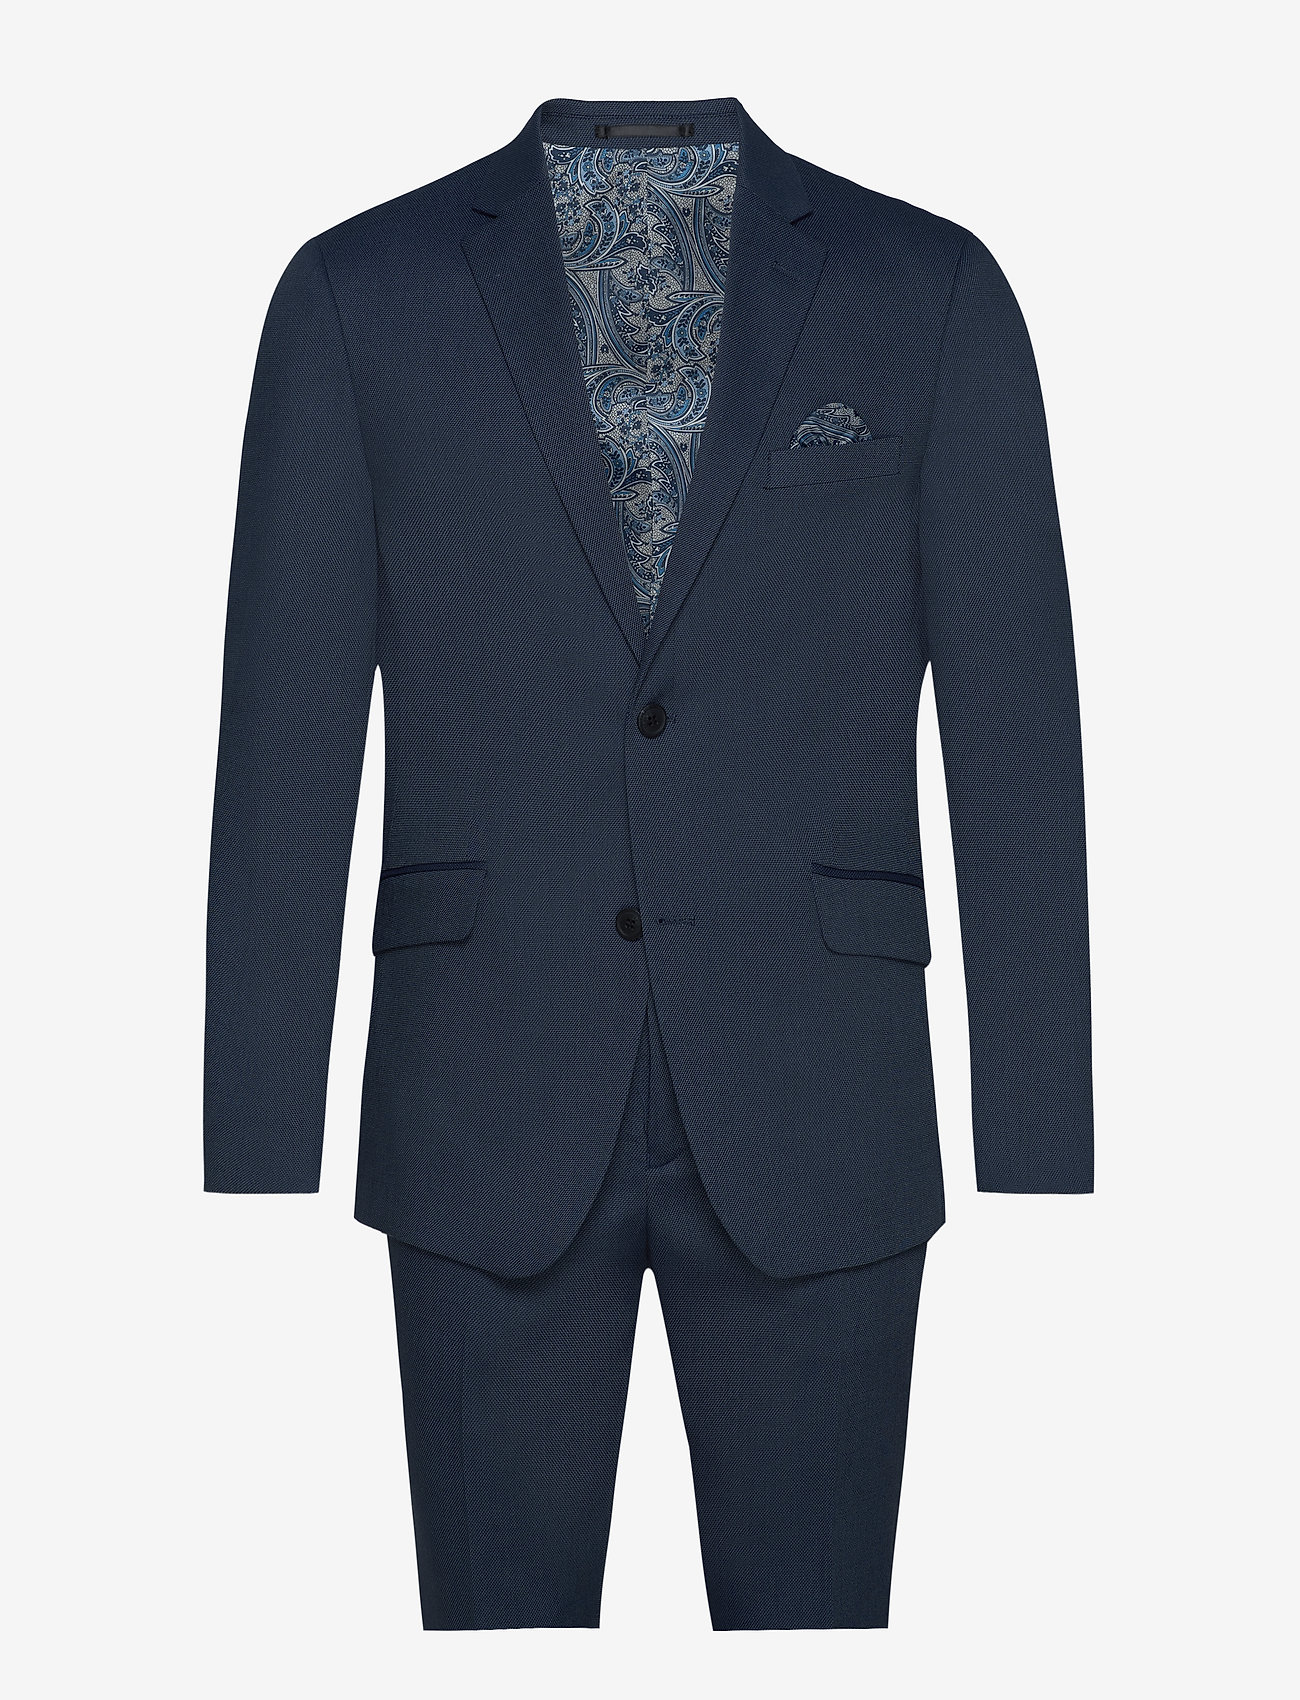 Lindbergh - Structure suit - single breasted suits - blue